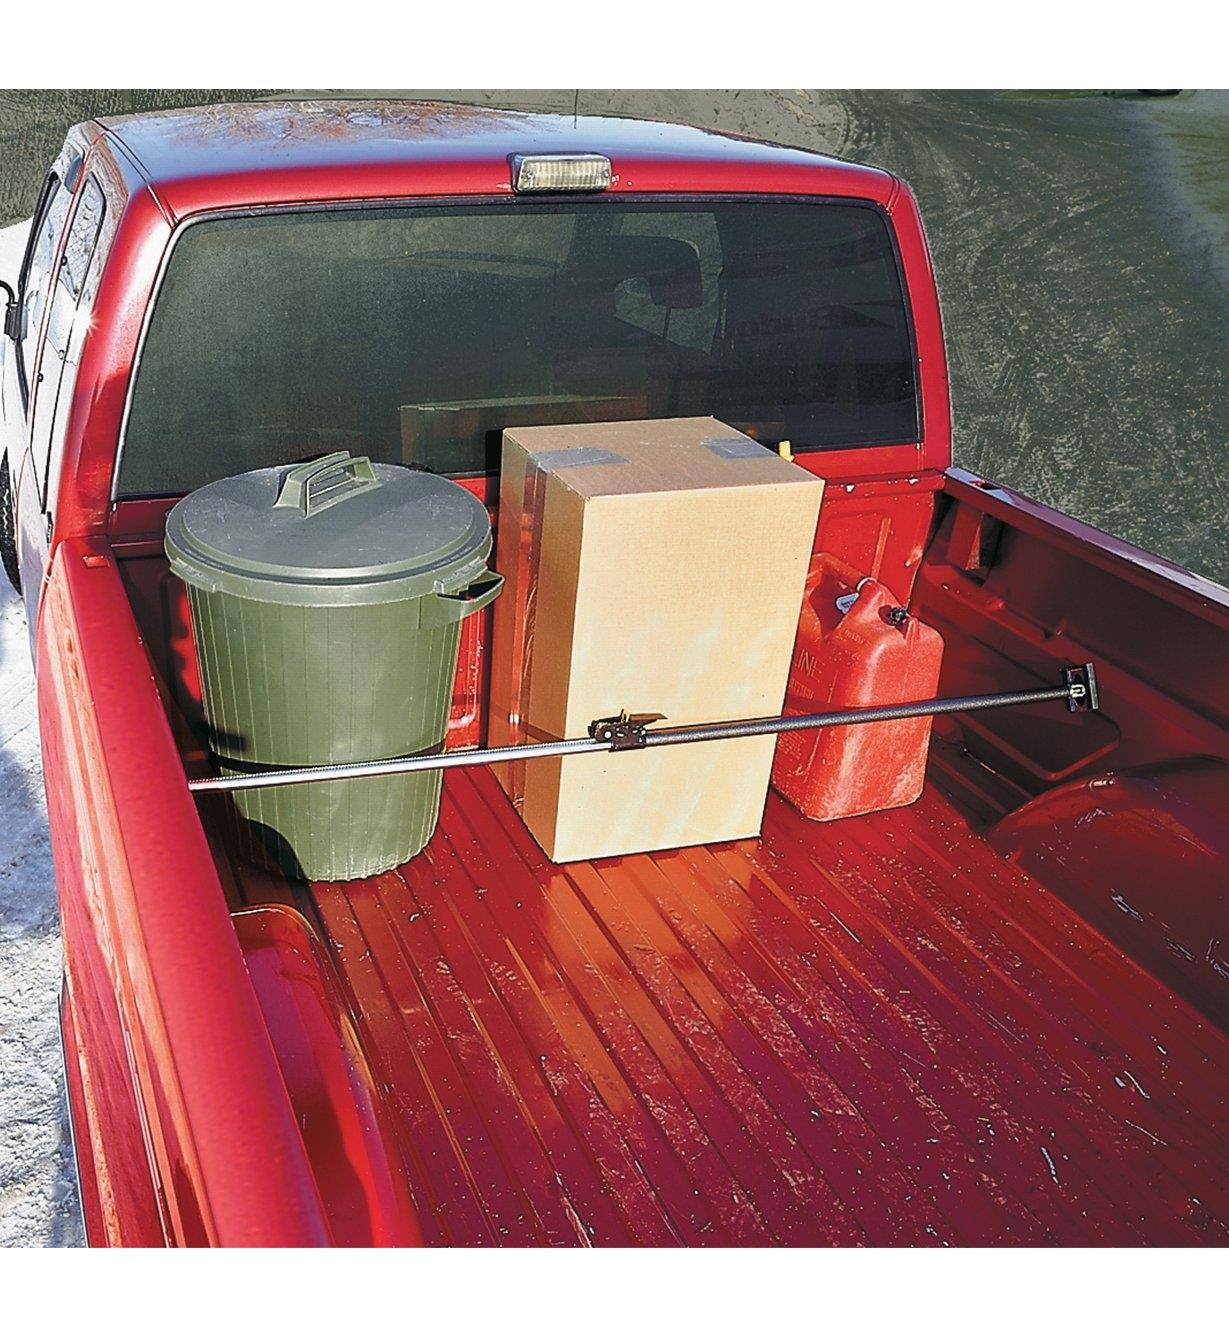 Ratcheting Cargo Bar installed in a truck bed, holding cargo in place